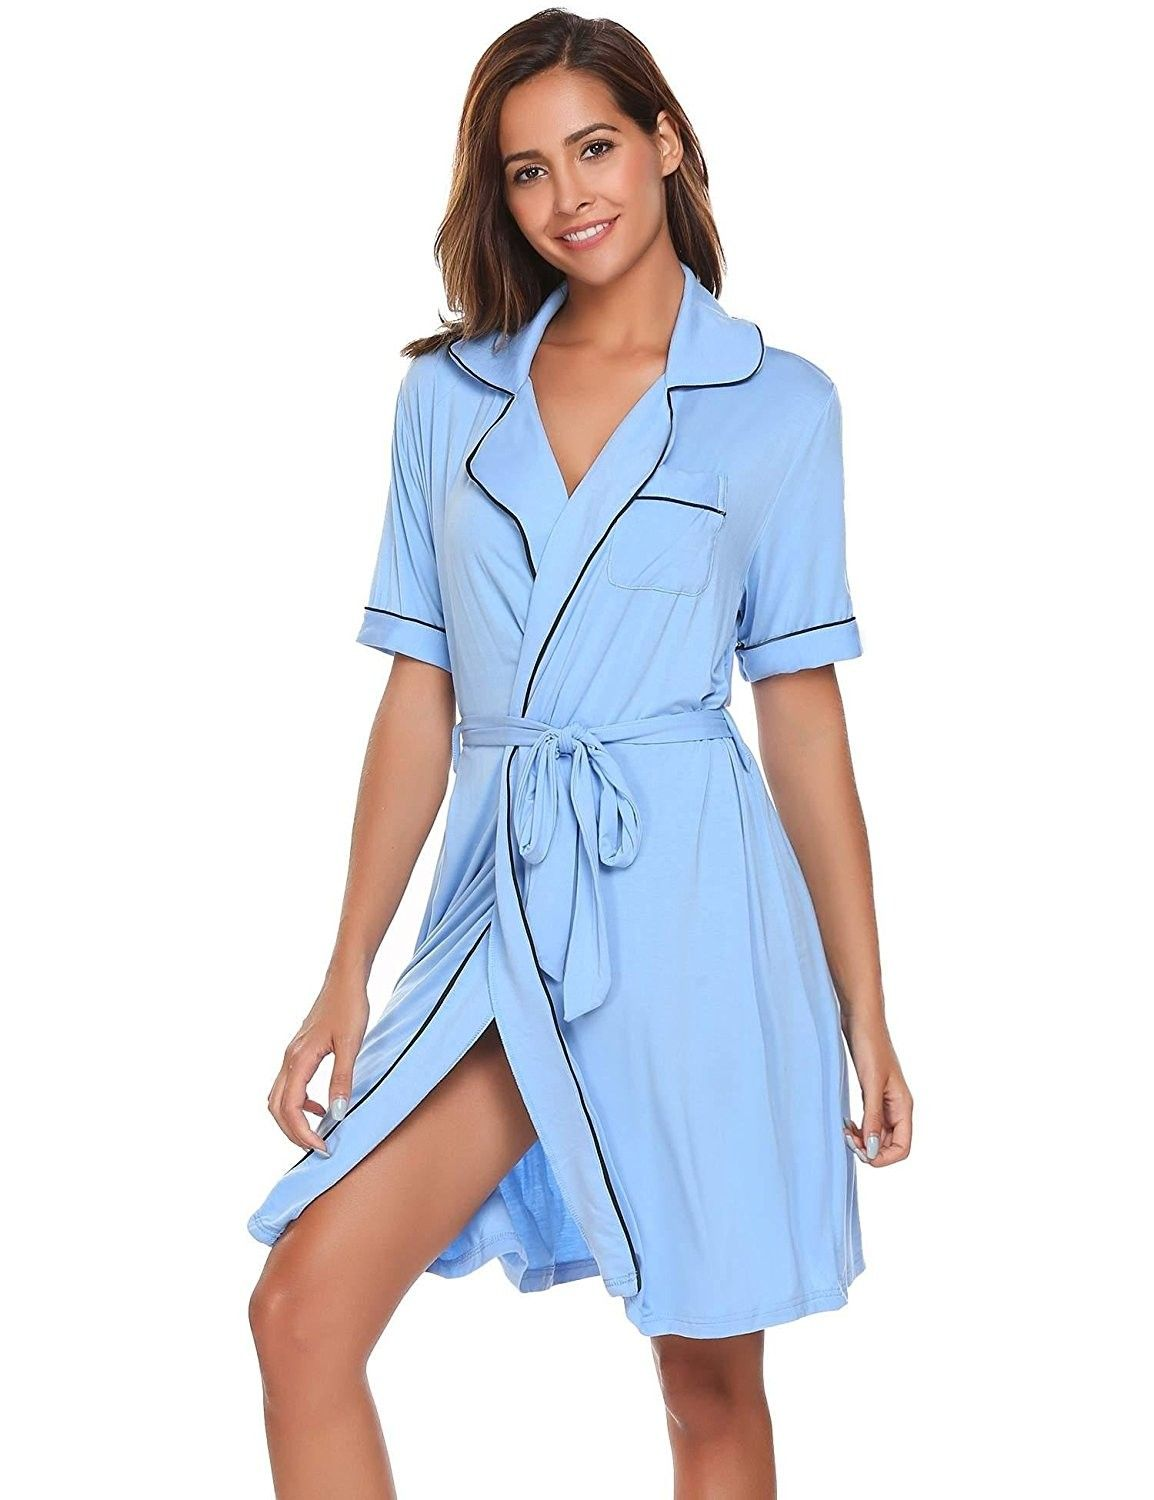 79349d8f32a Womens Rayon Short Slevee Robe Soft Solid Knit Nightwear with Belt S ...